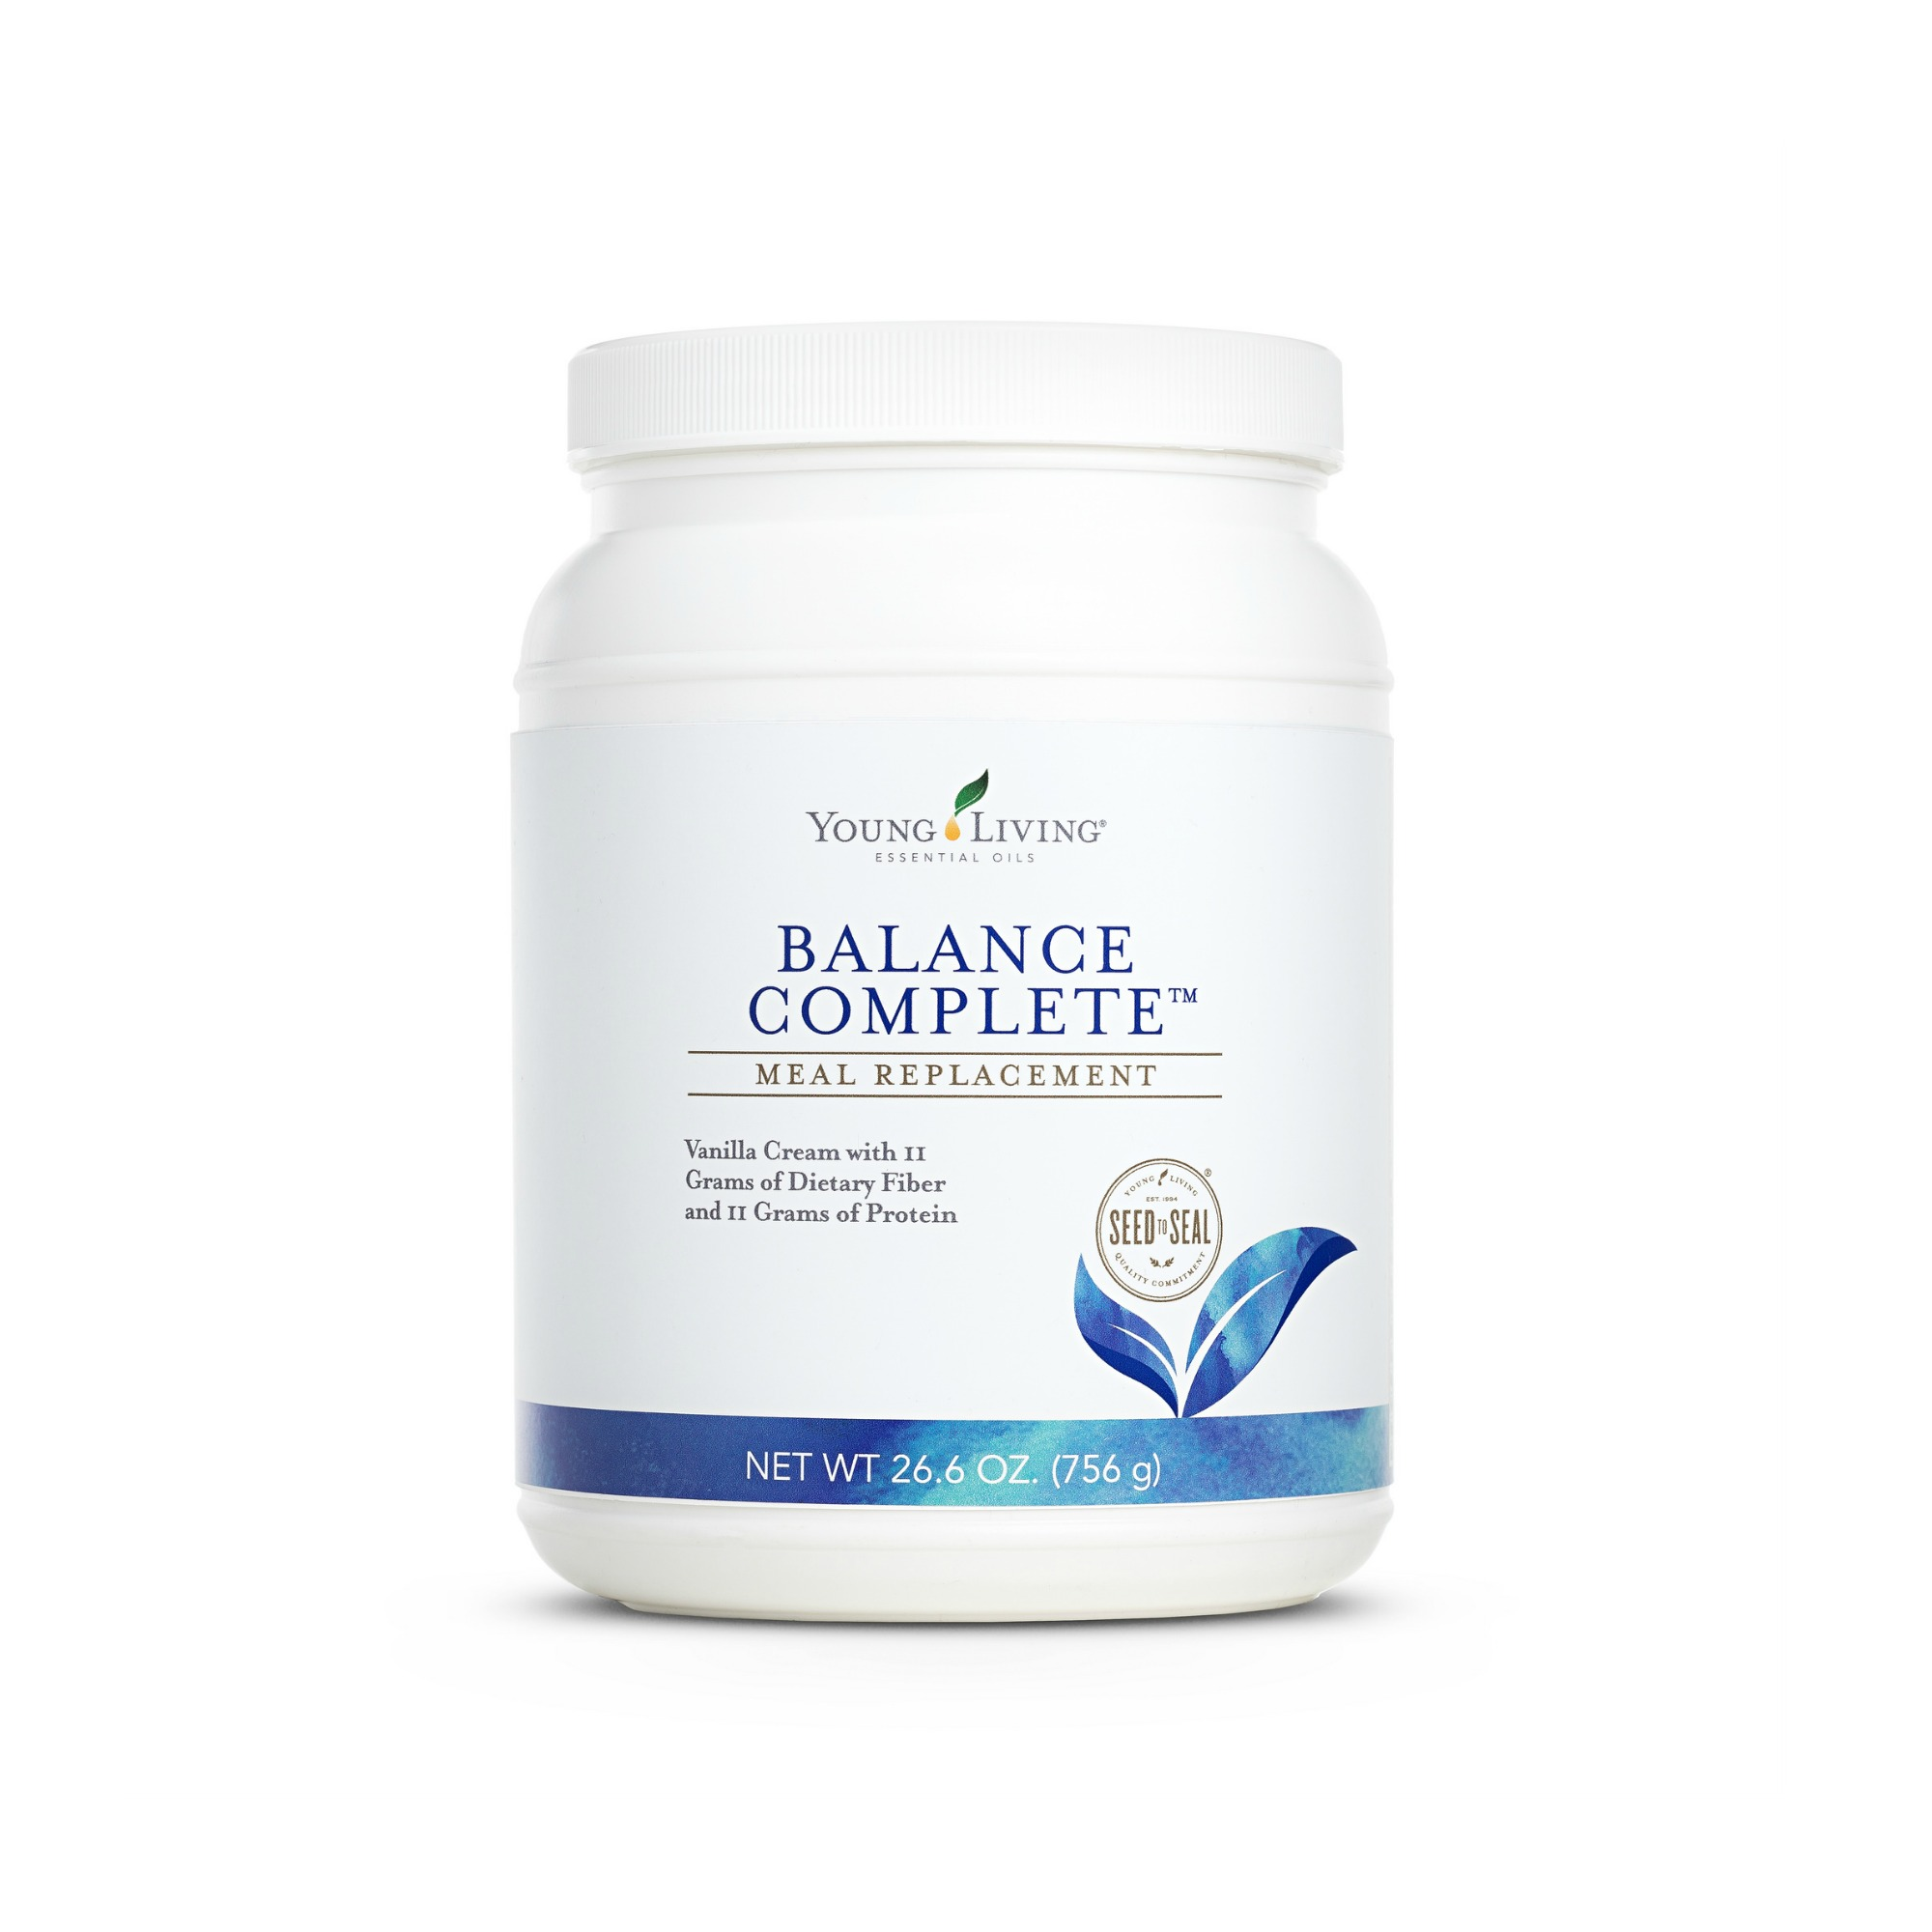 BALANCE COMPLETE    Balance Complete™ is a super-food-based meal replacement that is both a powerful nutritive energizer and a cleanser. Offering the benefits of Ningxia wolfberry powder, brown rice bran, barley grass, extra virgin coconut oil, aloe vera, cinnamon powder, and a premium whey protein blend, Balance Complete is high in fiber, high in protein, and contains the good fats, enzymes, vitamins, and minerals needed for a nutritionally dynamic meal. Balance Complete also features Young Living's proprietary V-Fiber™ blend, which supplies an amazing 11 grams of fiber per serving, absorbs toxins, and satisfies the appetite while balancing the body's essential requirements.   Click here   to learn more about this product.